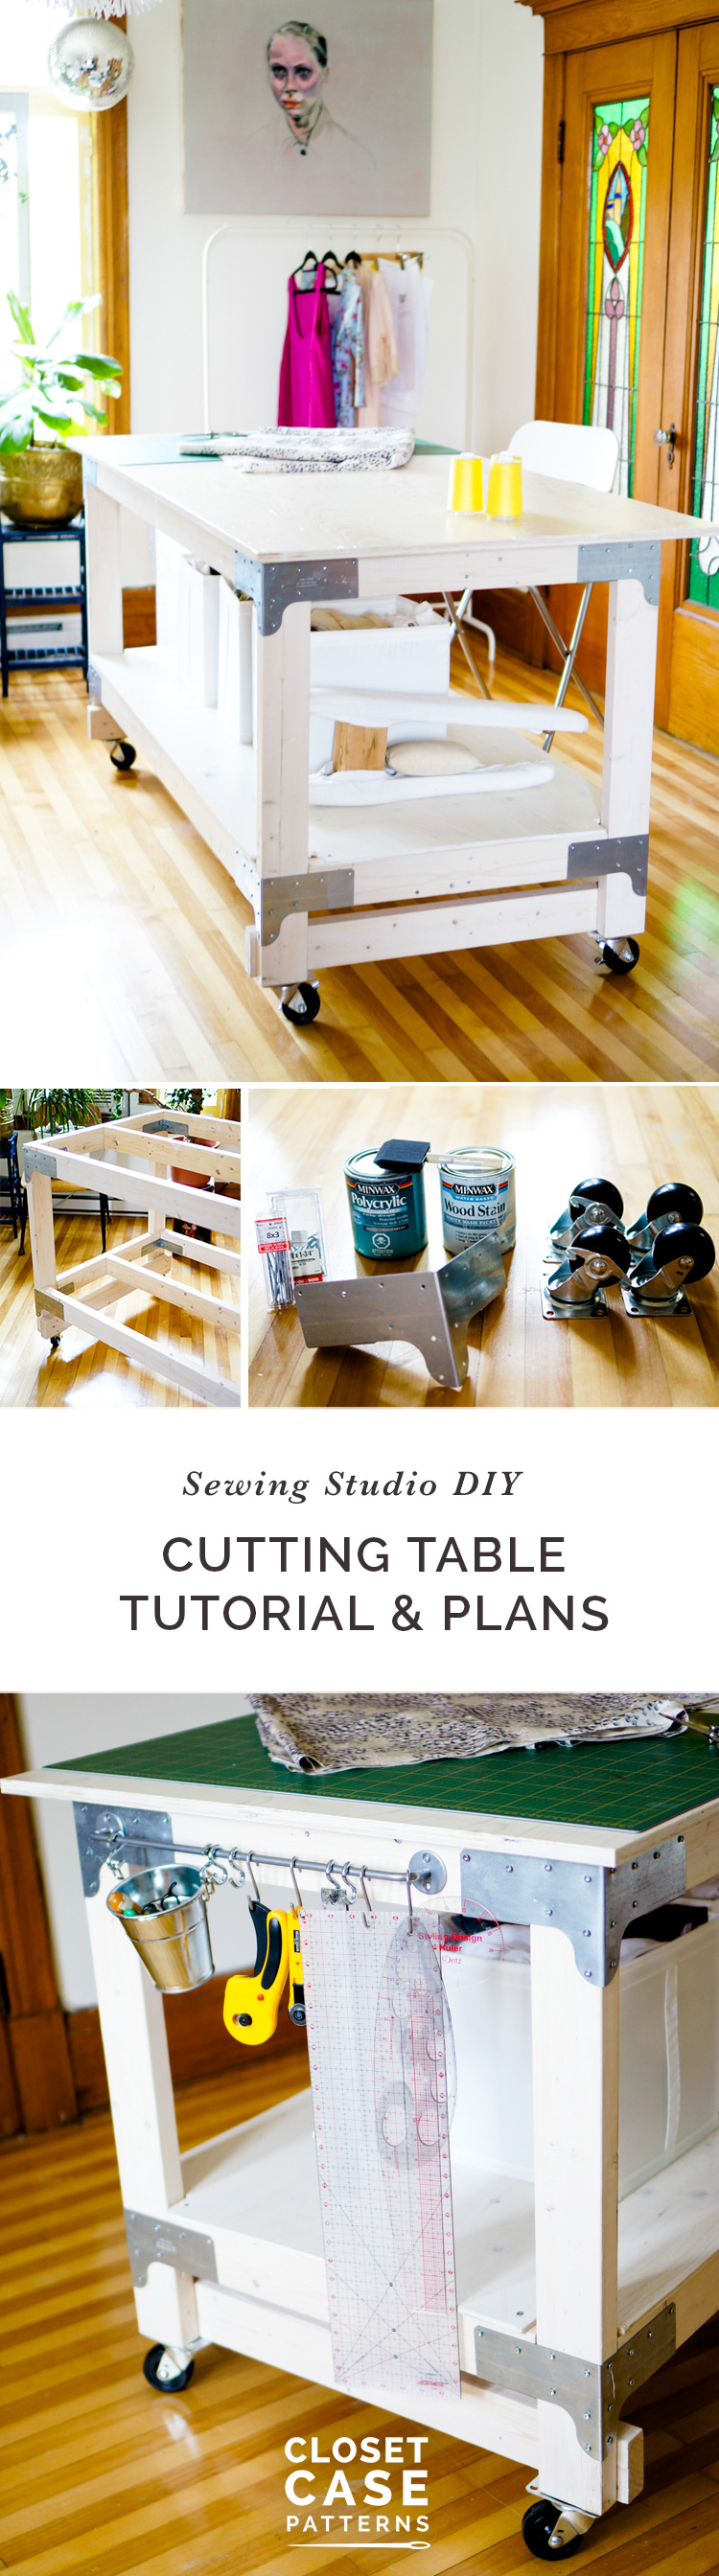 Cutting Table Tutorial & Plans // Simple Studio DIY // Closet Case Patterns